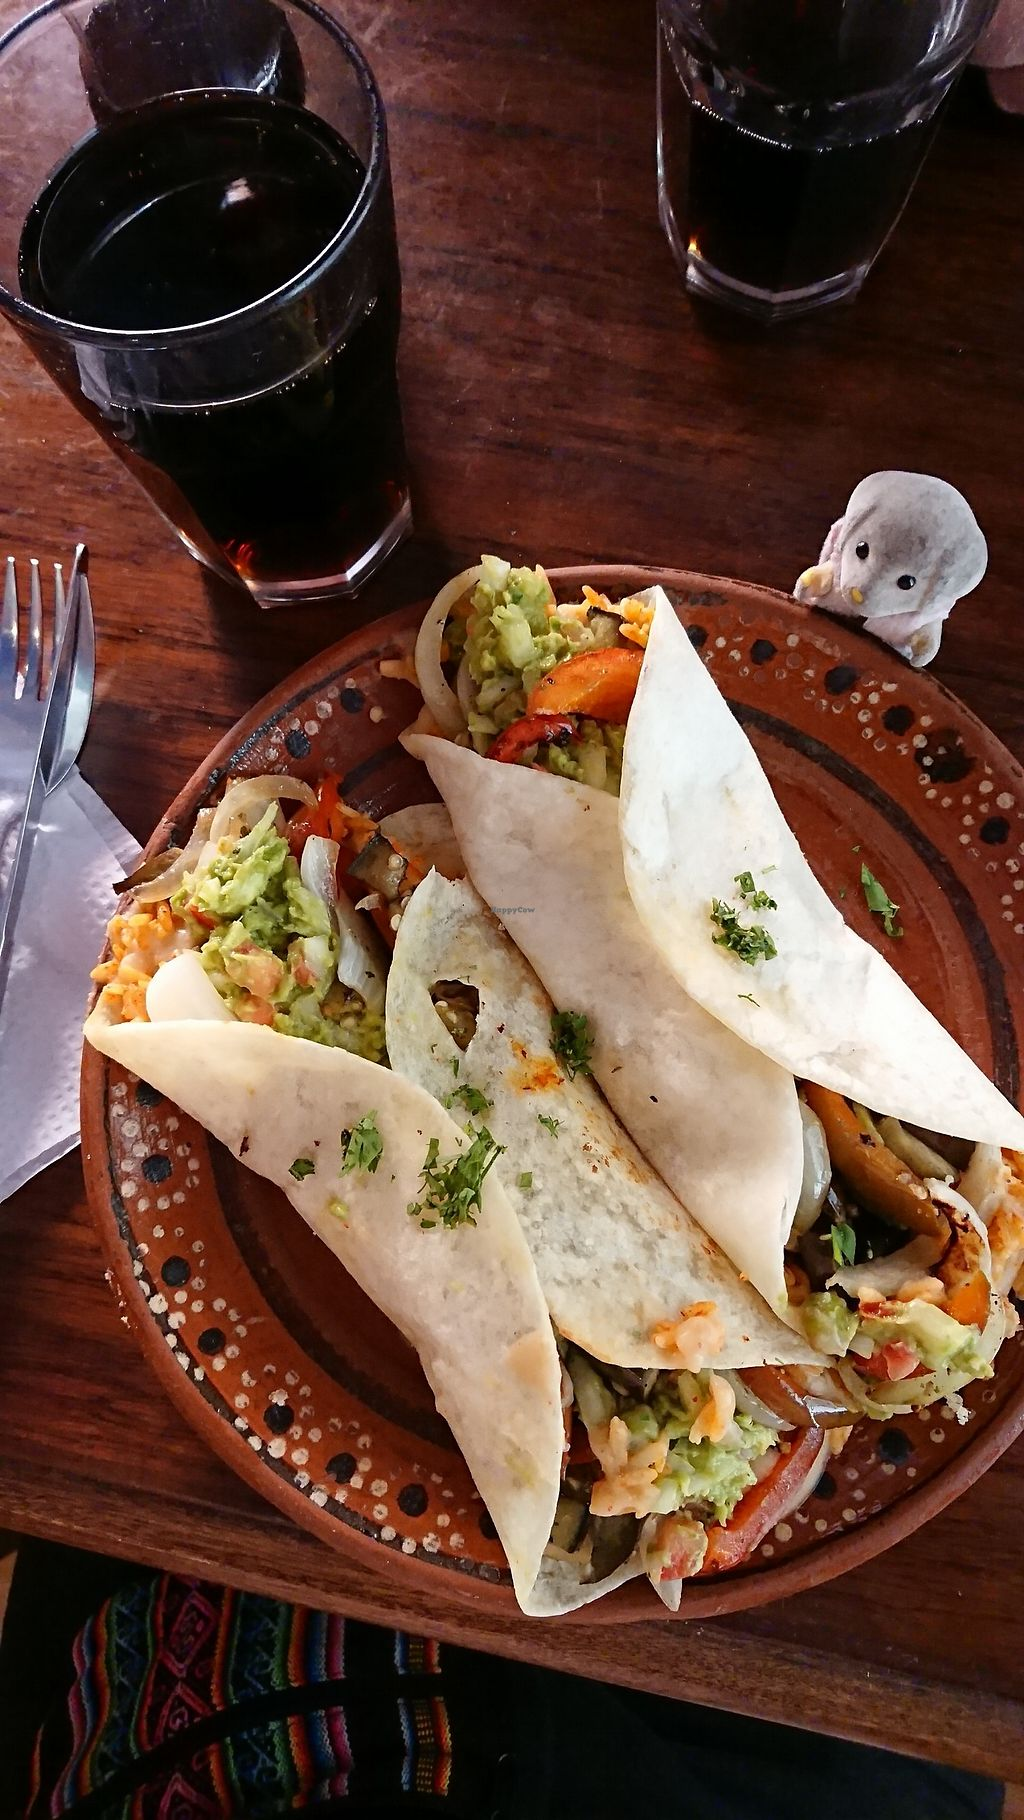 """Photo of ViveMexico  by <a href=""""/members/profile/MoaRichter"""">MoaRichter</a> <br/>Vegan burrito, take two to get really full or one if you're not that hungry  <br/> January 10, 2018  - <a href='/contact/abuse/image/84711/344874'>Report</a>"""